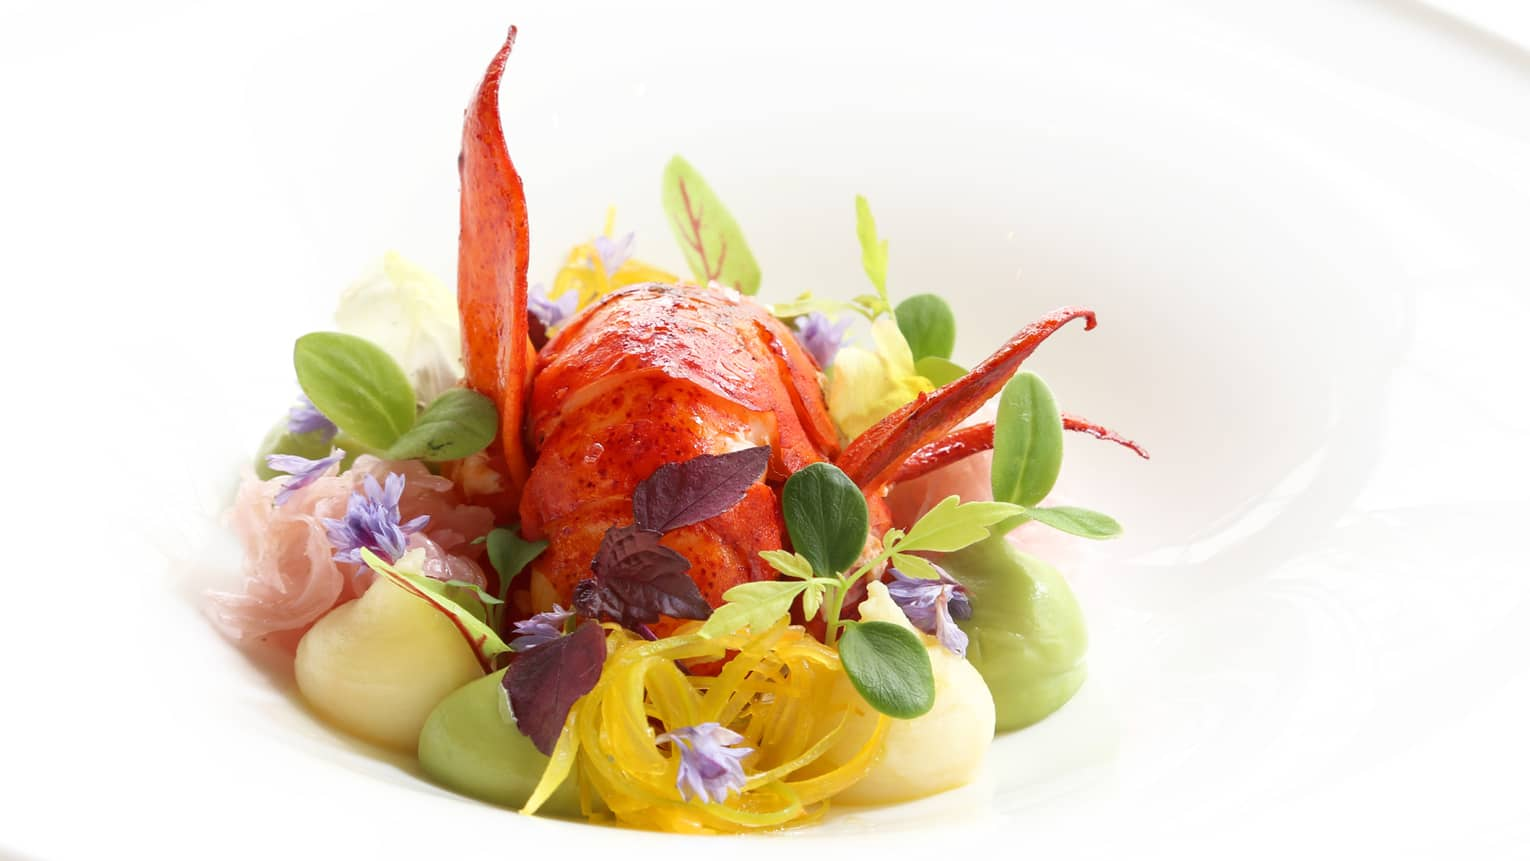 Beautifully presented red lobster tail with fresh accompaniments